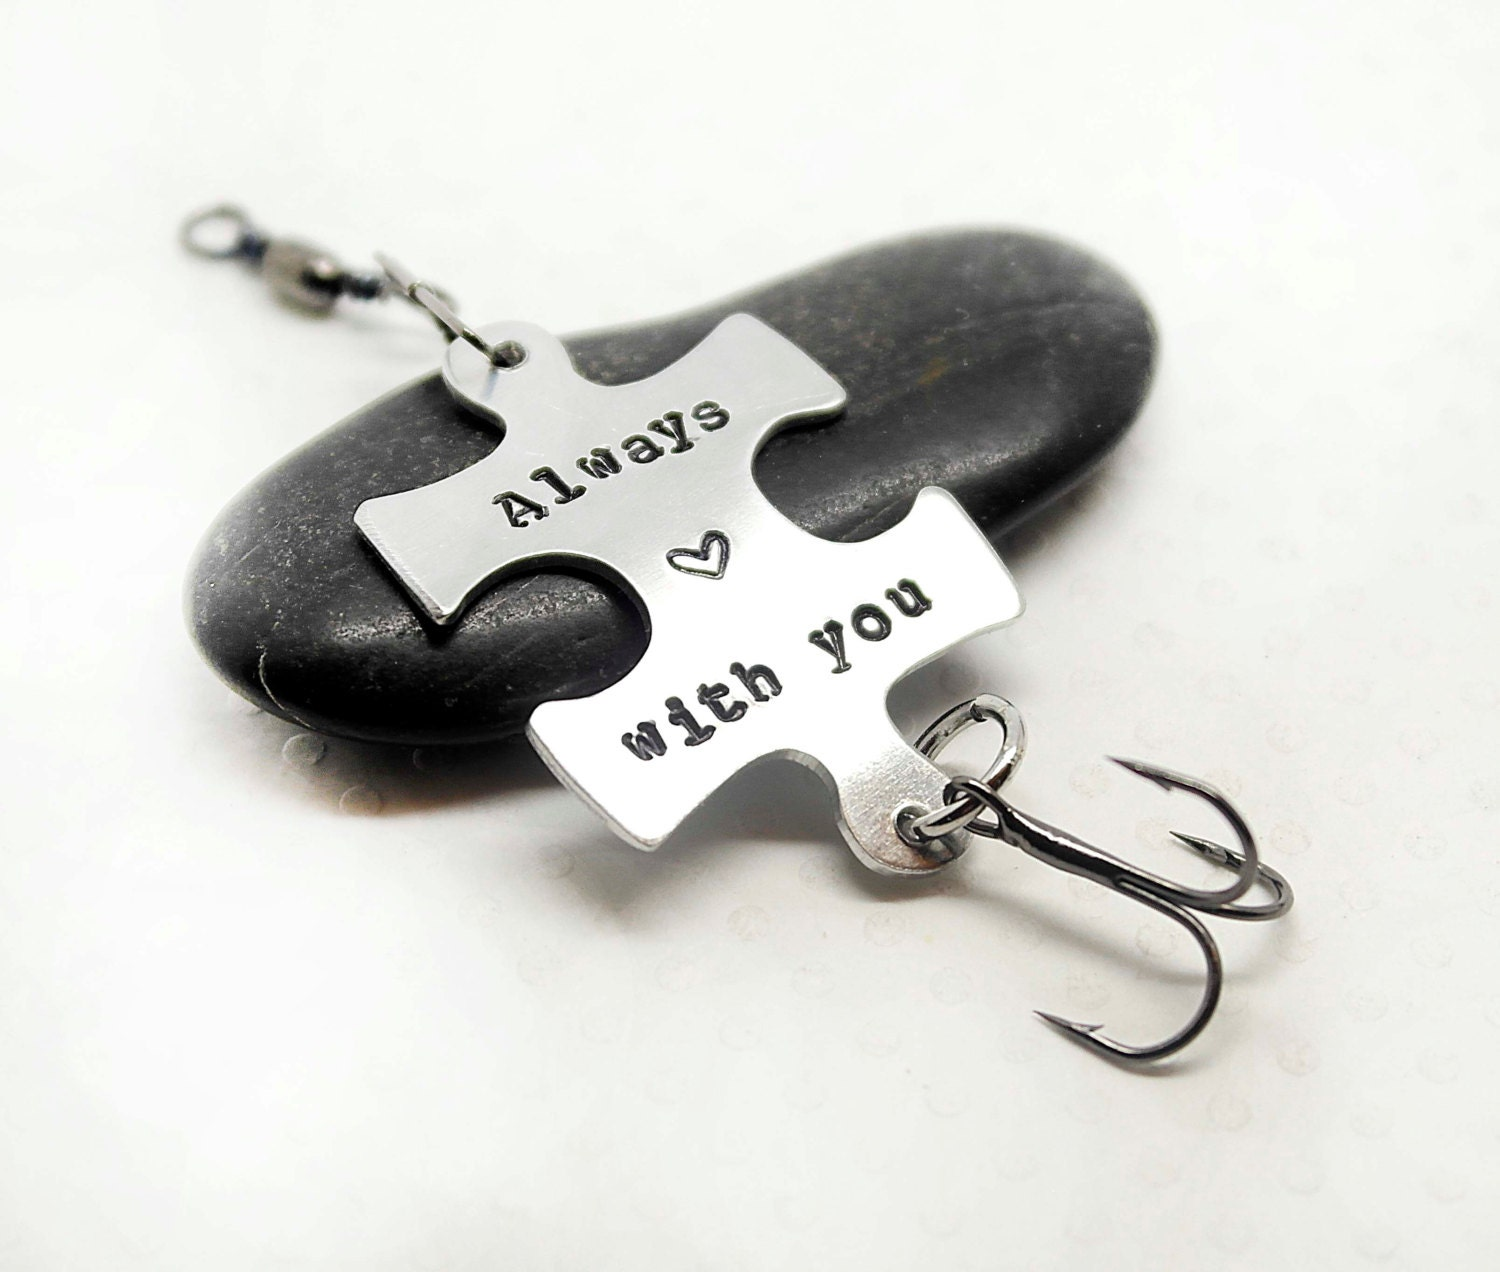 Puzzle fishing lure personalized fishing lure fish for Personalized fishing lure